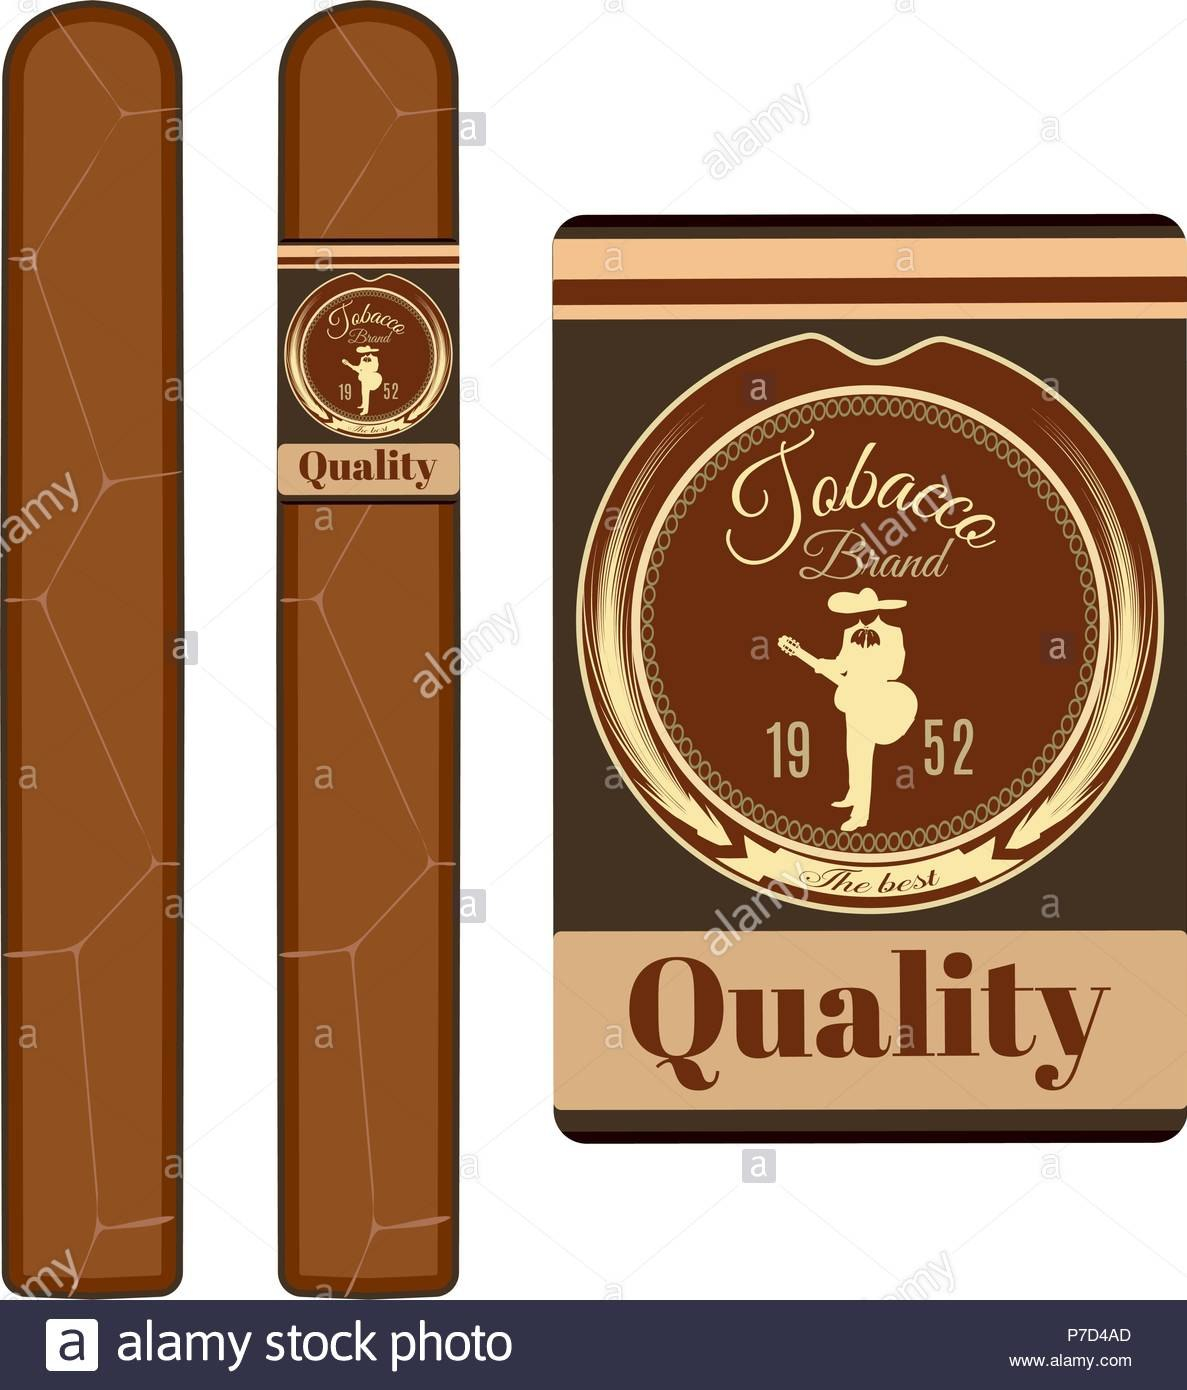 Vector Illustration Of Cuban Cigars With Label Without It And Cigar Pertaining To Cigar Label Template